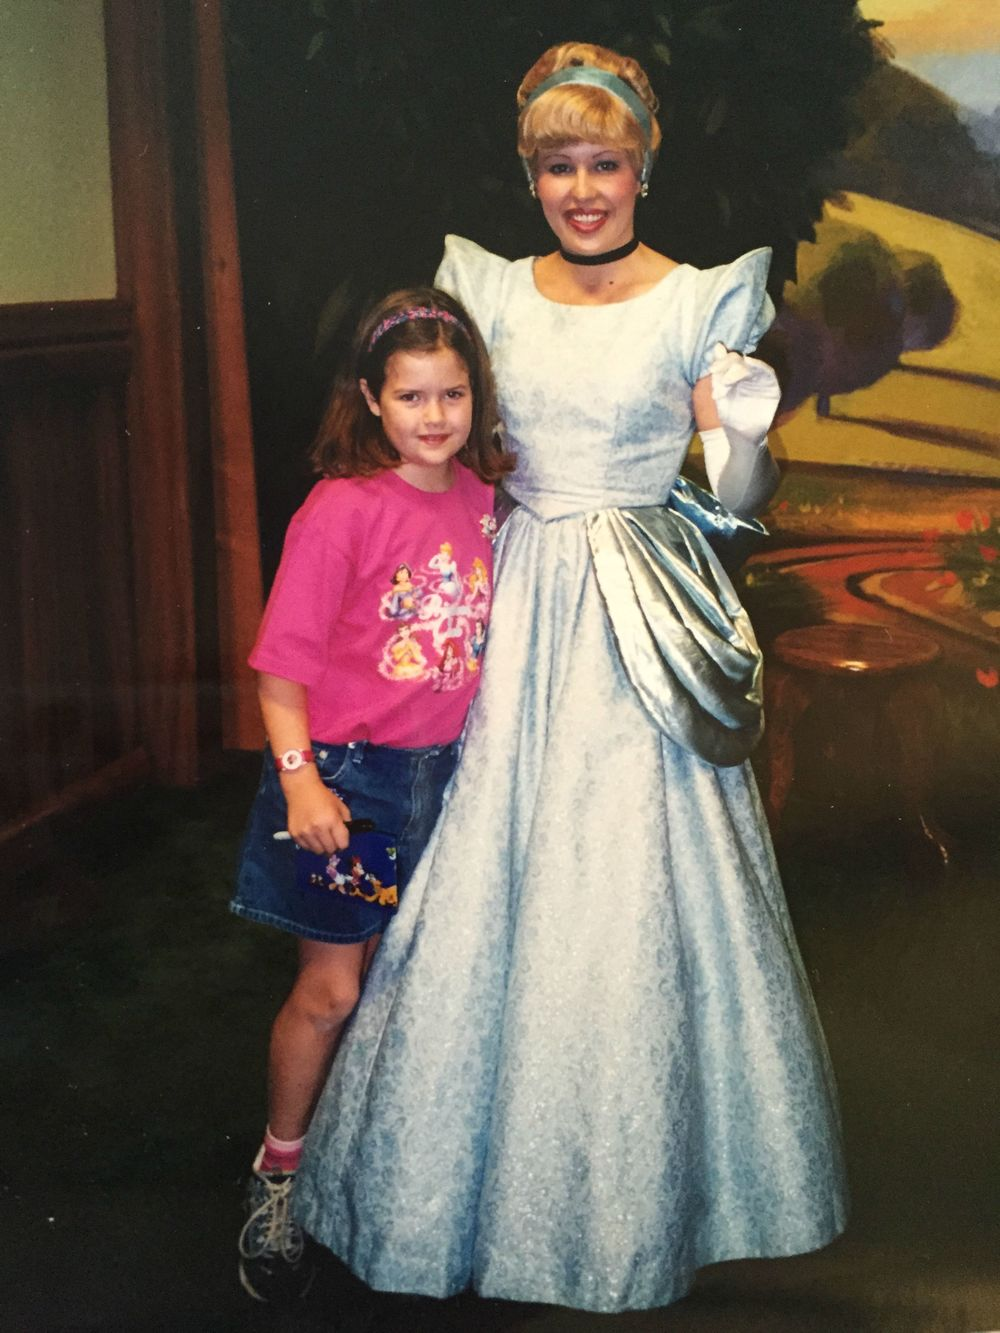 And here I am at 8-years-old FULFILLING my childhood dream of meeting Cinderella. THe line was so worth it. I hope getting to this picture was worth it too.